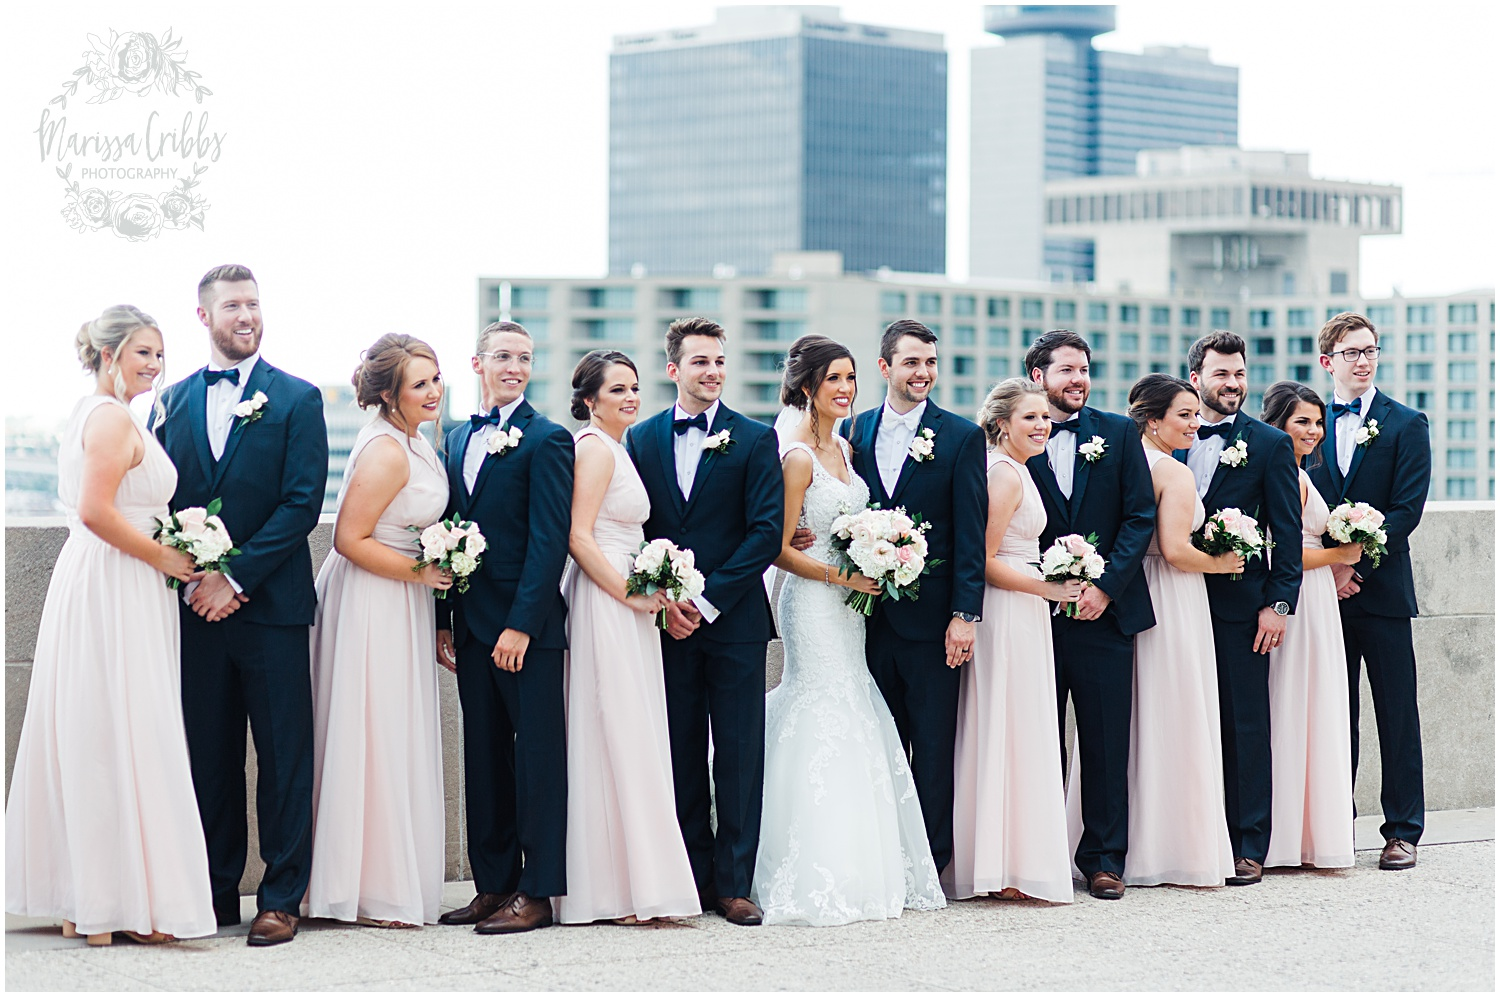 MEGAN & DEREK WEDDING BLOG | MARISSA CRIBBS PHOTOGRAPHY_8147.jpg